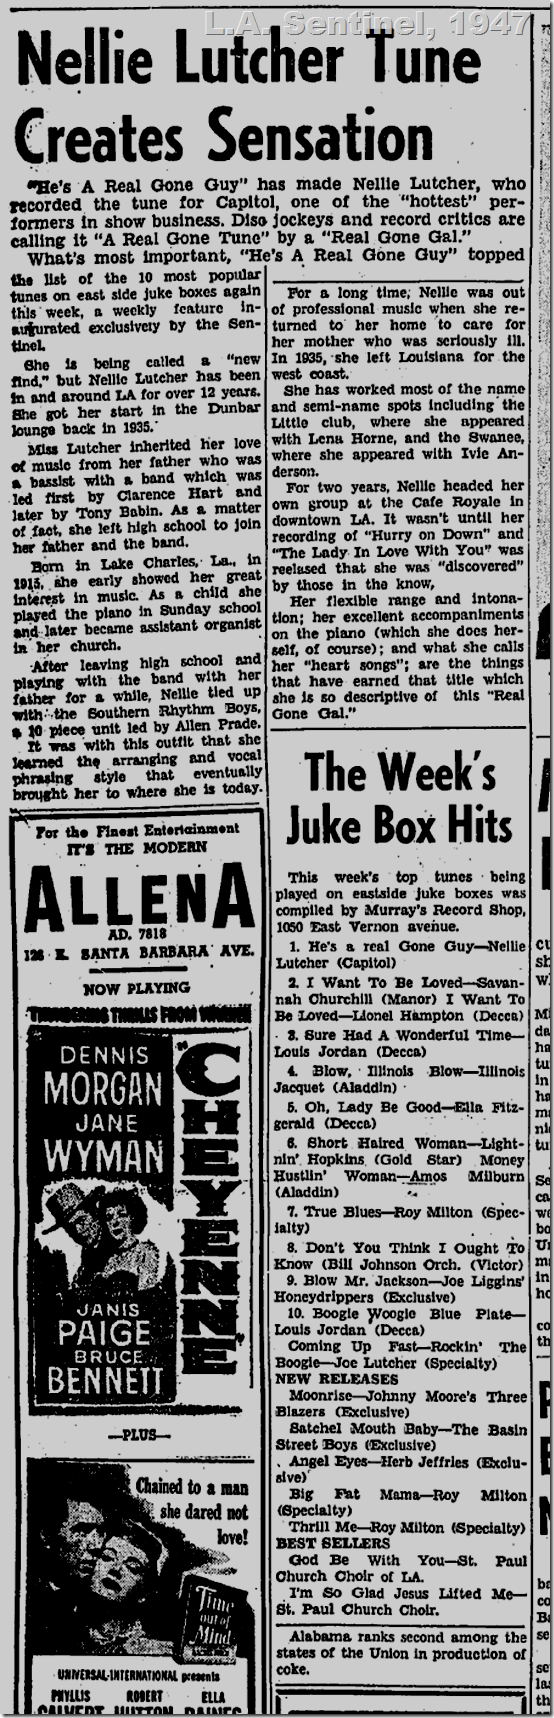 Aug. 21, 1947, Juke Box Hits